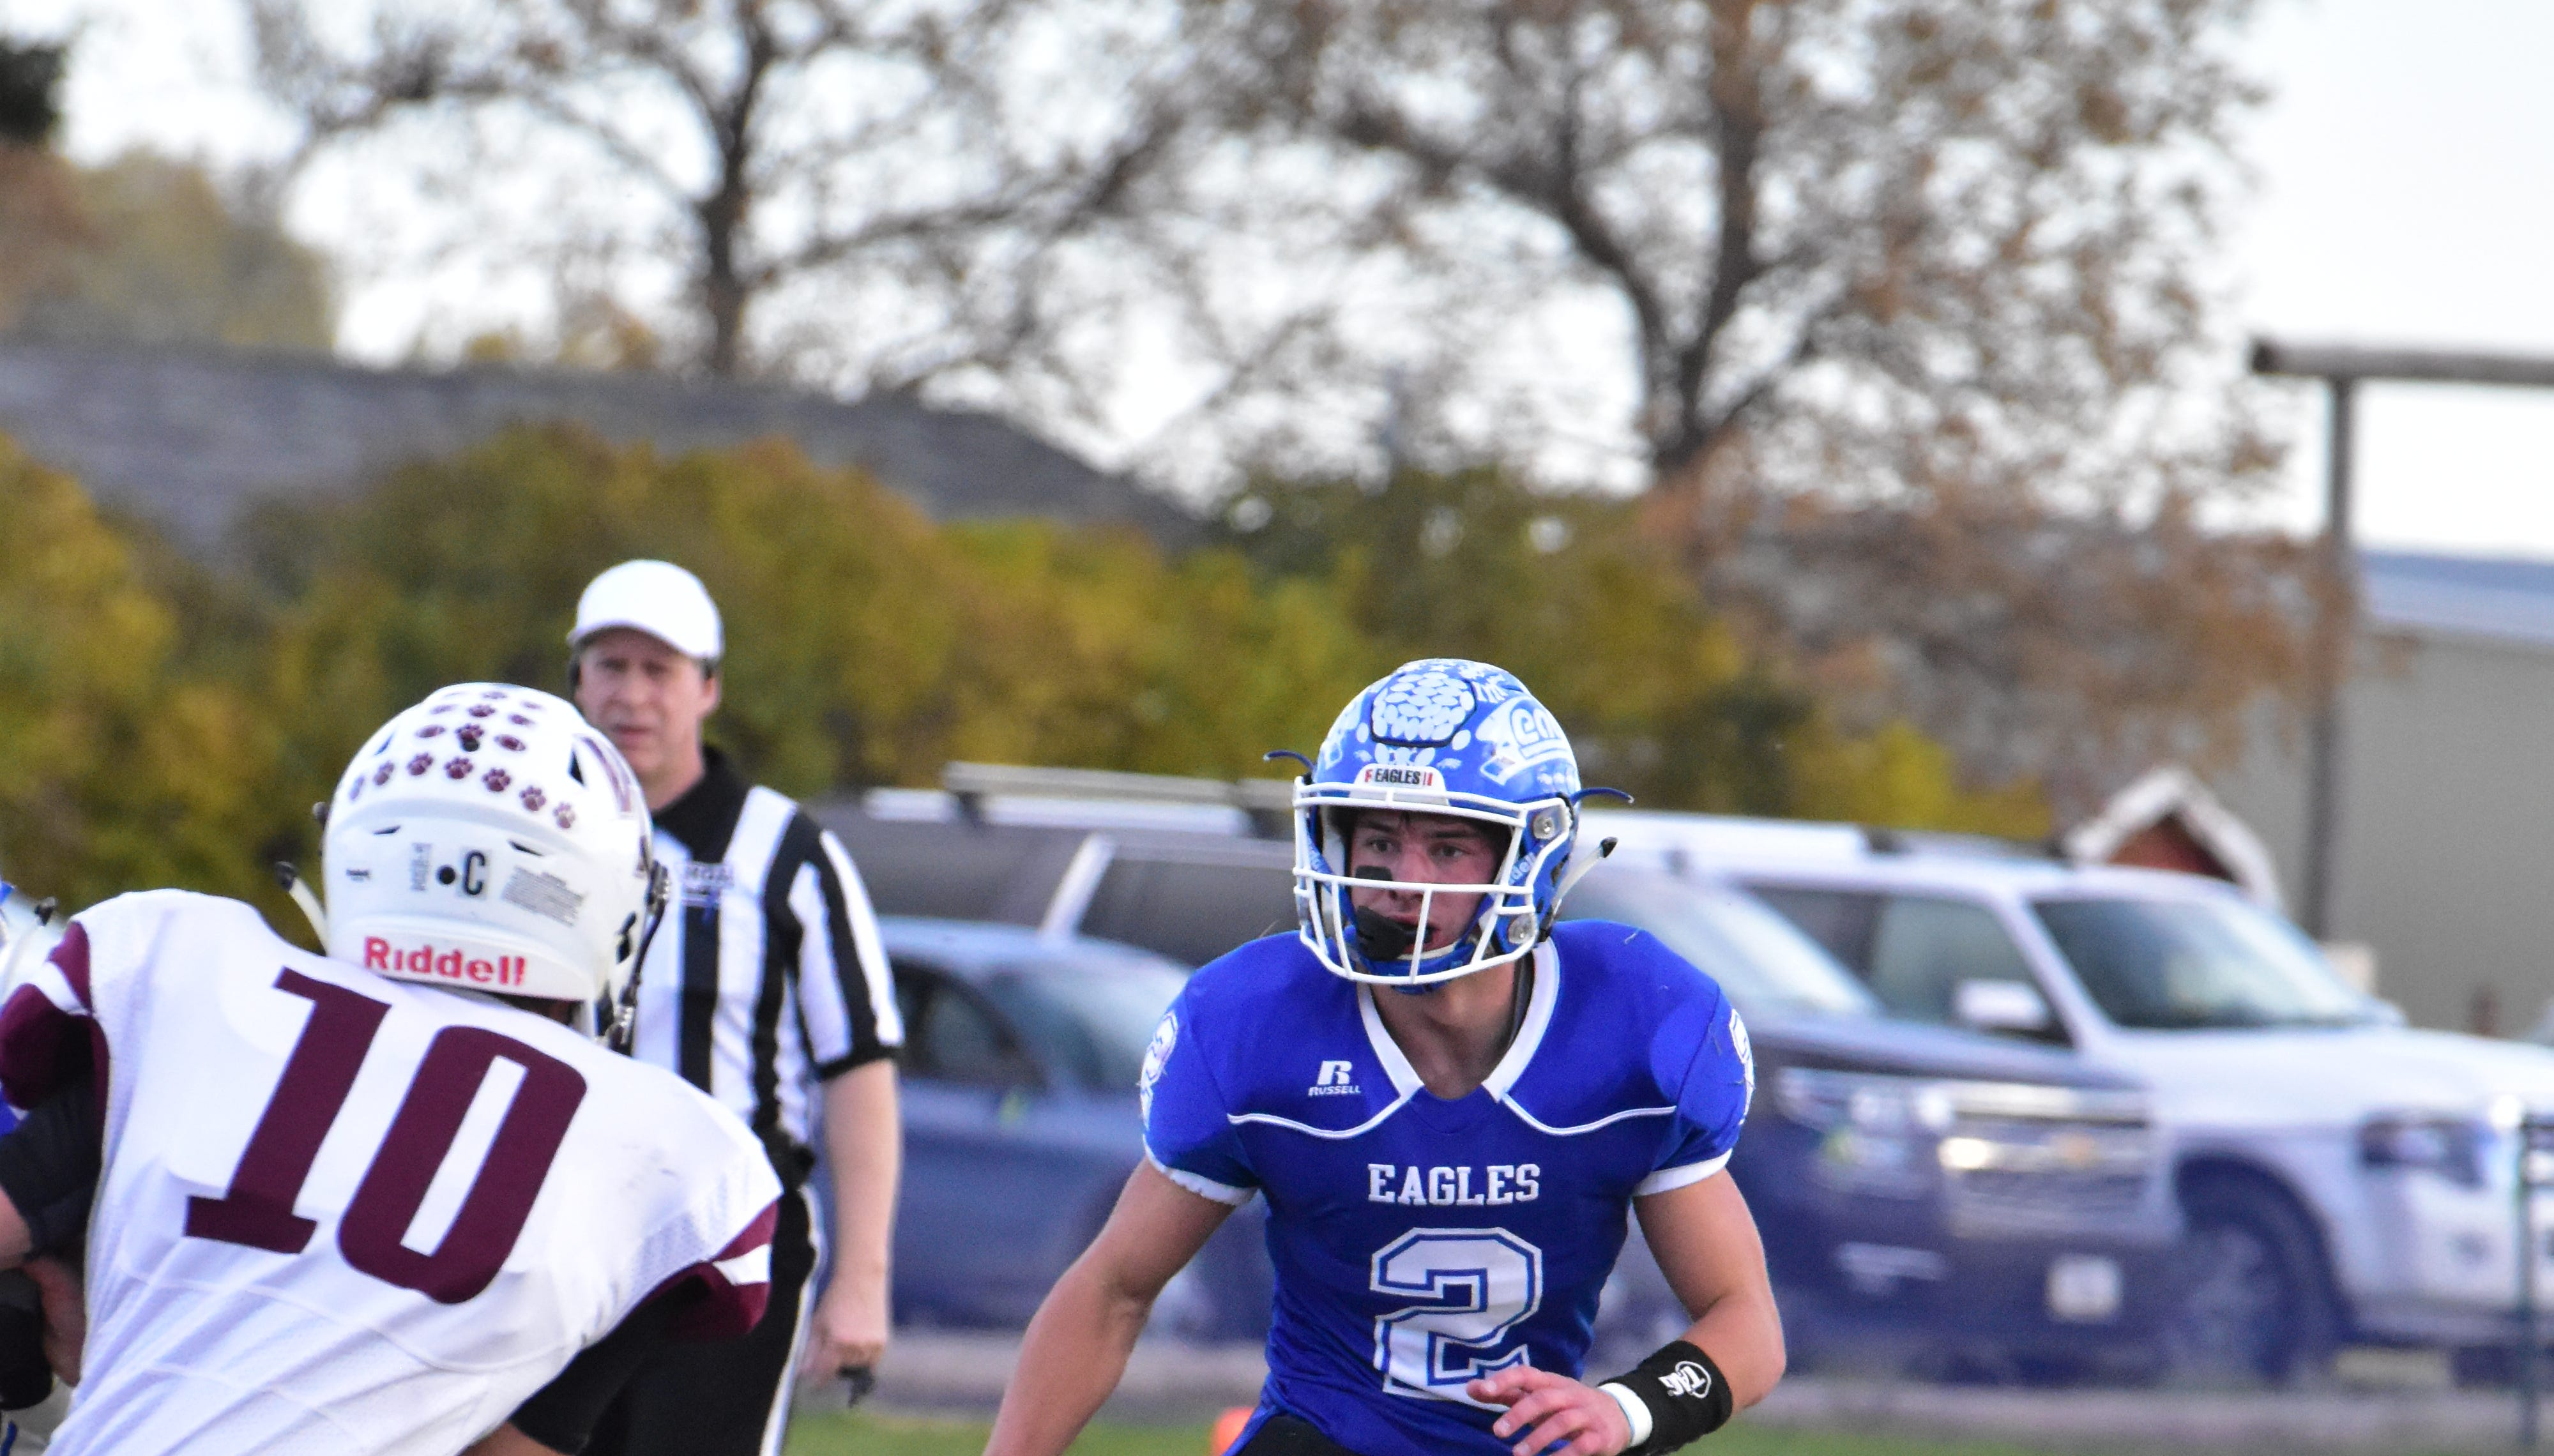 Roundup of playoff action from northcentral Montana squads.